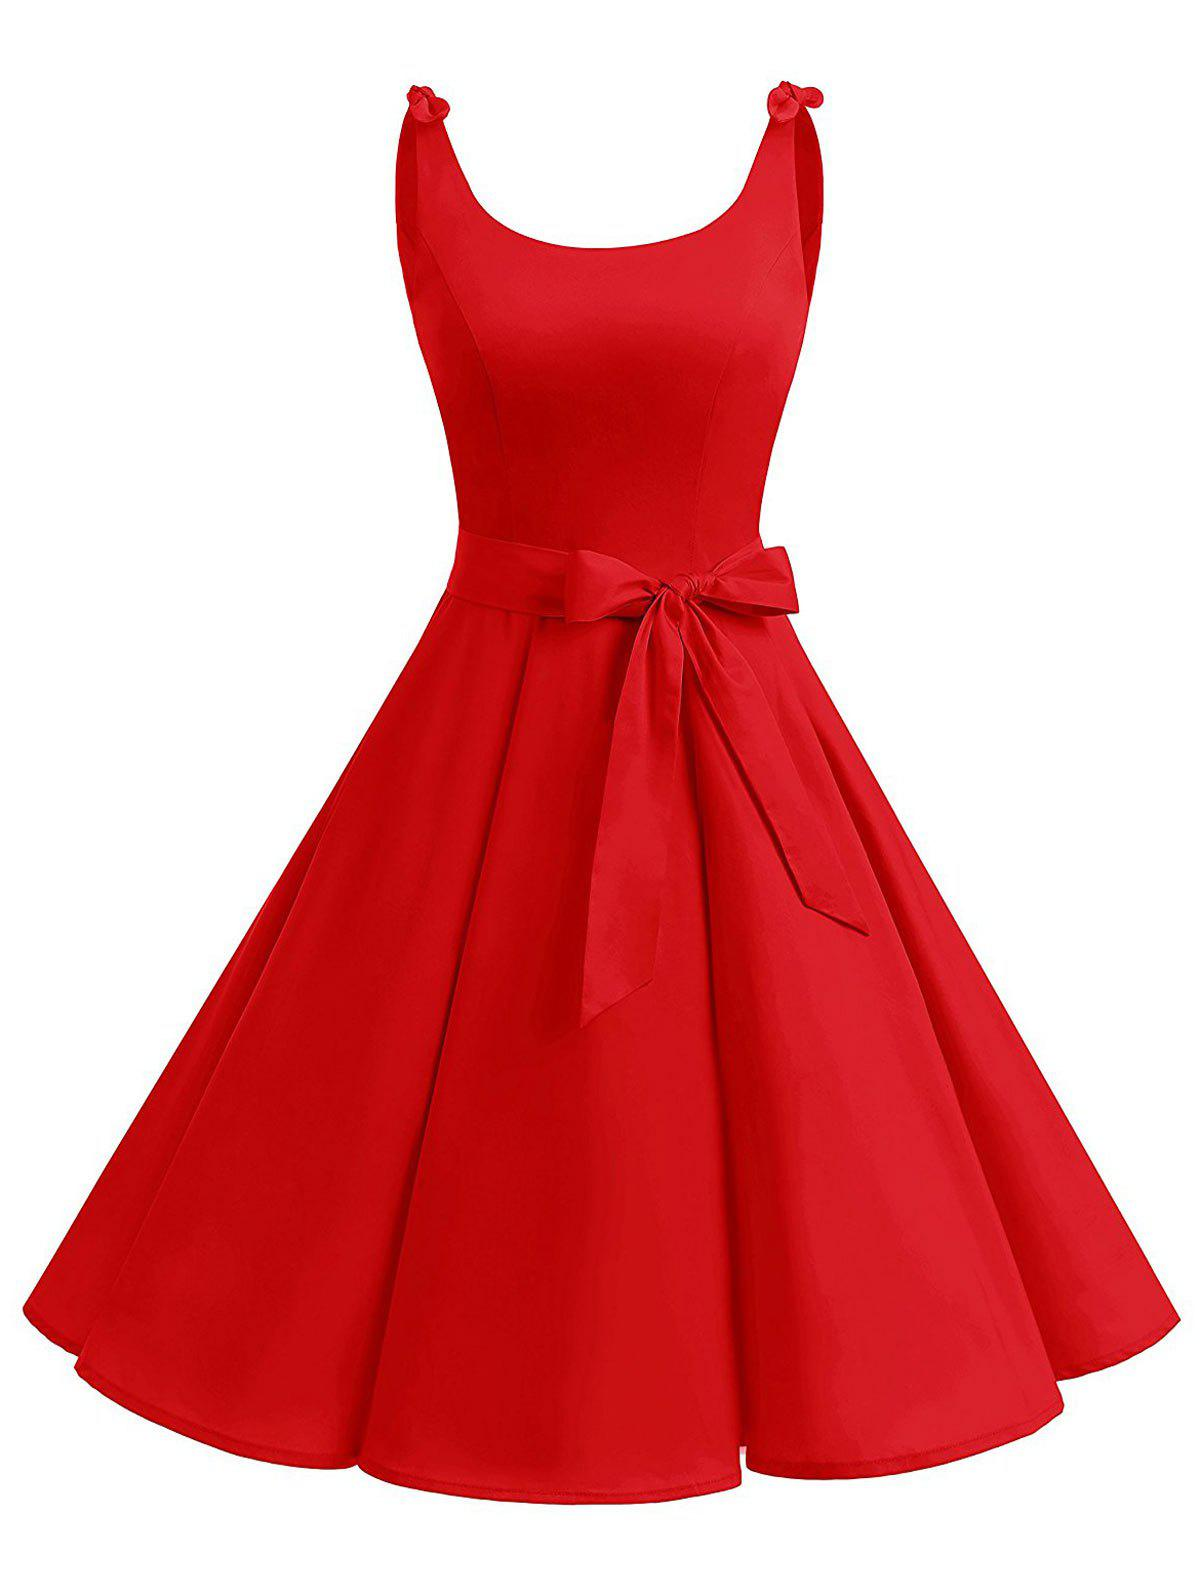 Vintage Bowknot Cut Out Skater Party DressWOMEN<br><br>Size: 2XL; Color: RED; Style: Vintage; Material: Cotton,Polyester; Silhouette: A-Line; Dress Type: Fit and Flare Dress,Skater Dress; Dresses Length: Knee-Length; Neckline: Scoop Neck; Sleeve Length: Sleeveless; Embellishment: Cut Out; Pattern Type: Solid Color; With Belt: Yes; Season: Summer; Weight: 0.3500kg; Package Contents: 1 x Dress  1 x Belt;